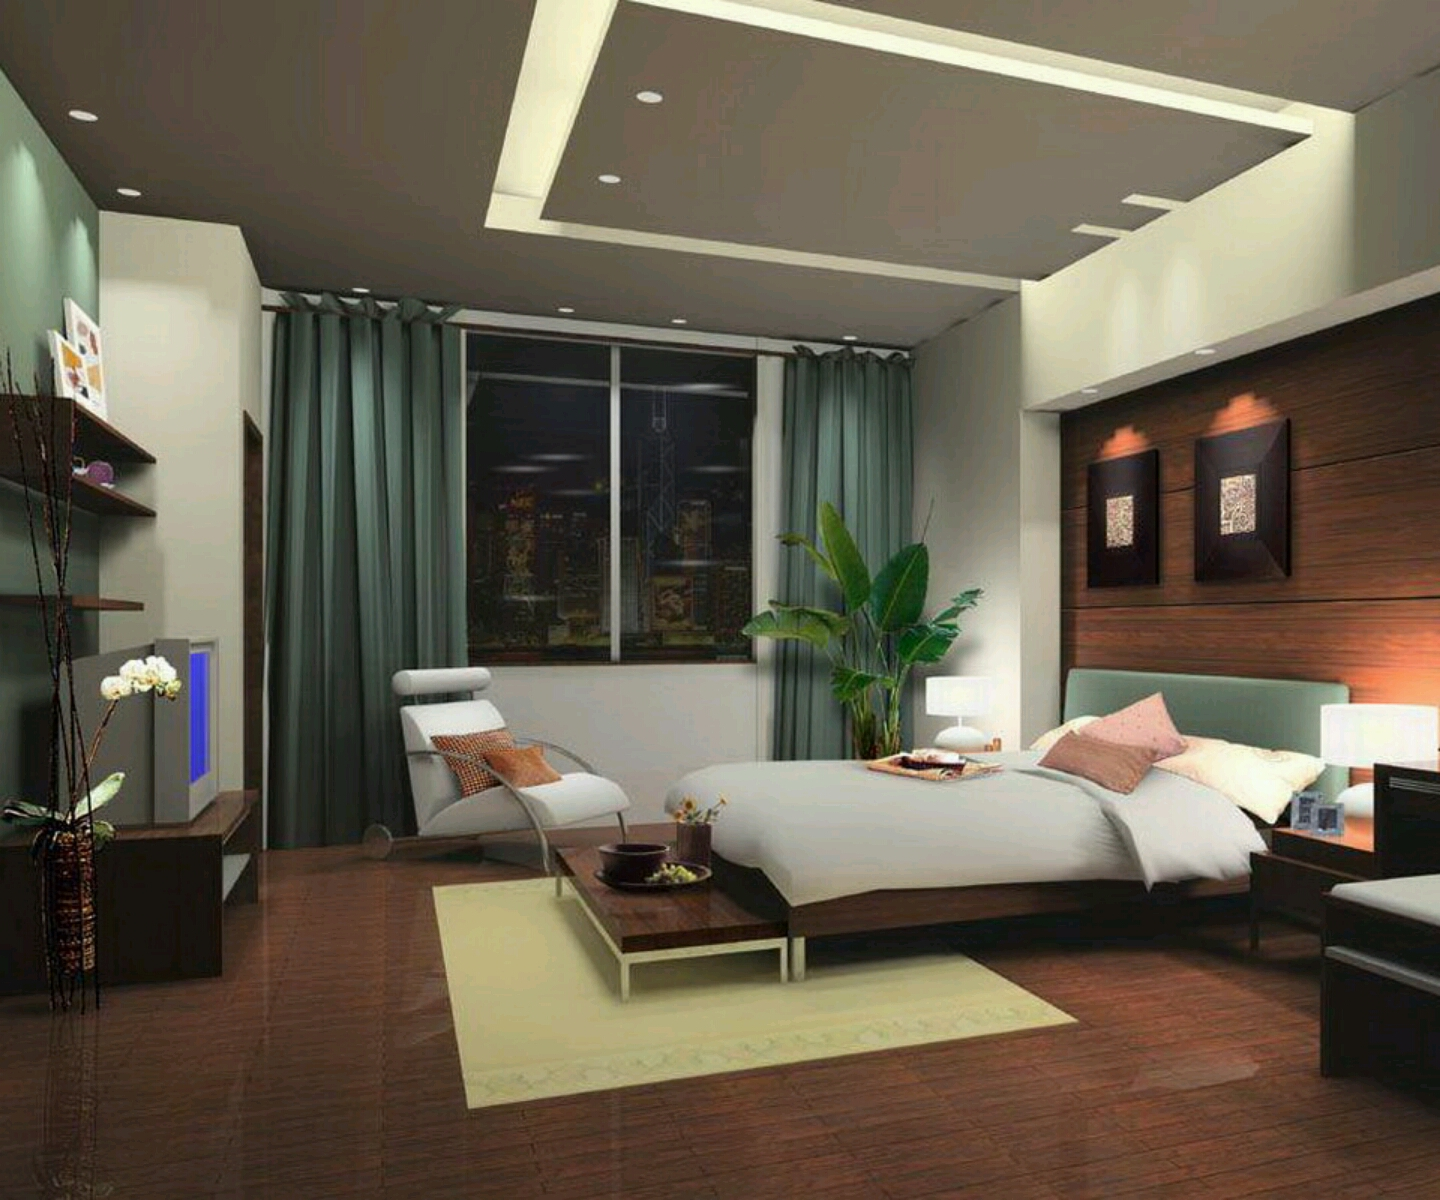 New home designs latest modern bedrooms designs best ideas Best bed designs images